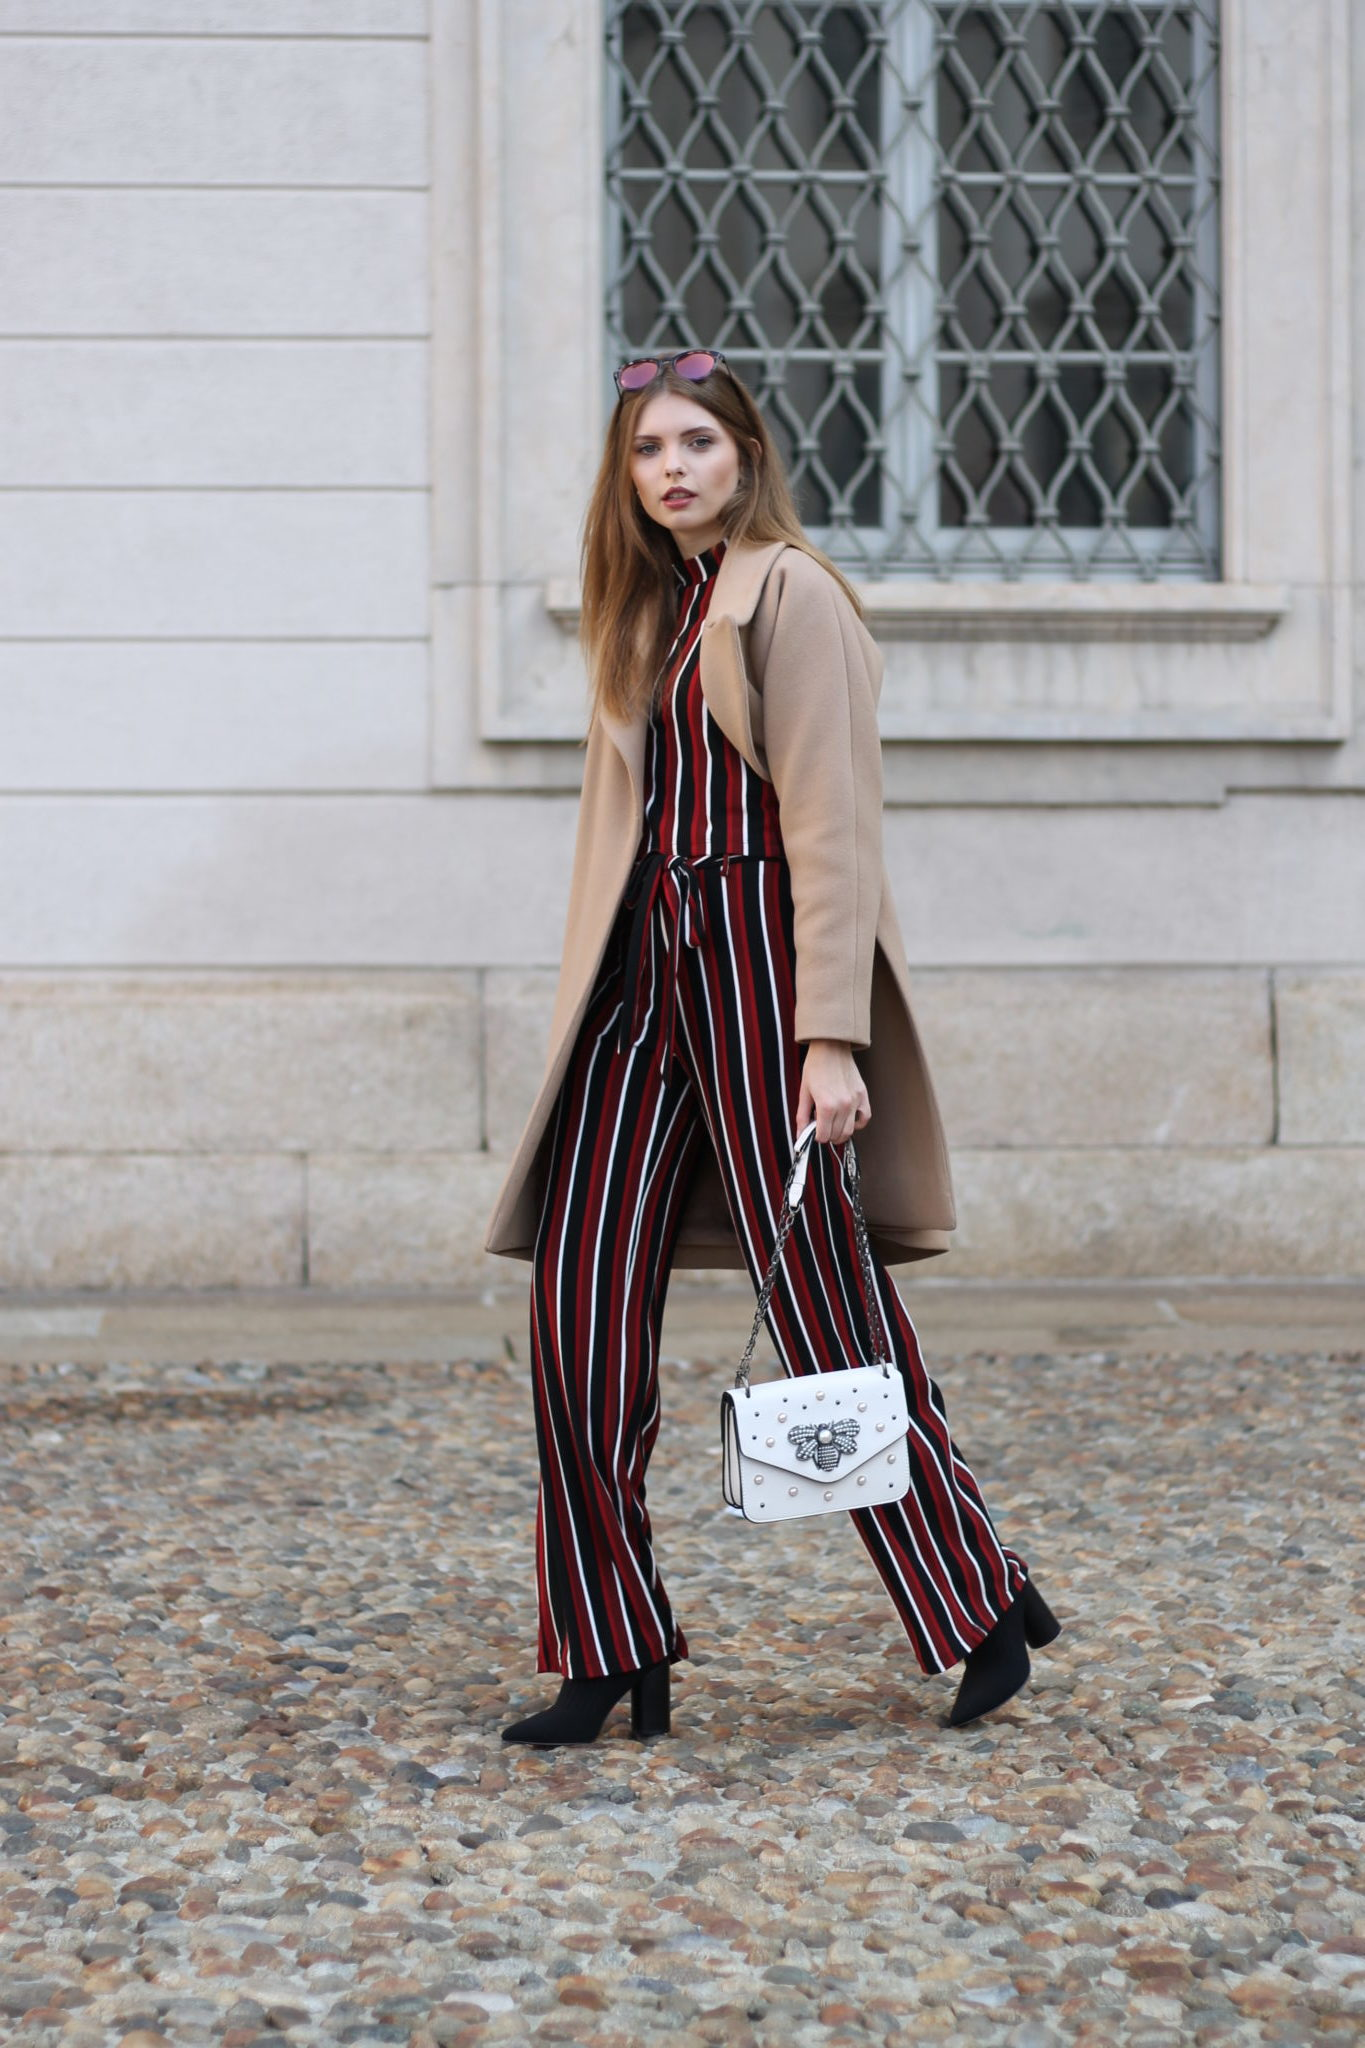 IMG 1670 e1519230502118 - BOLD STRIPED JUMPSUIT I MILAN